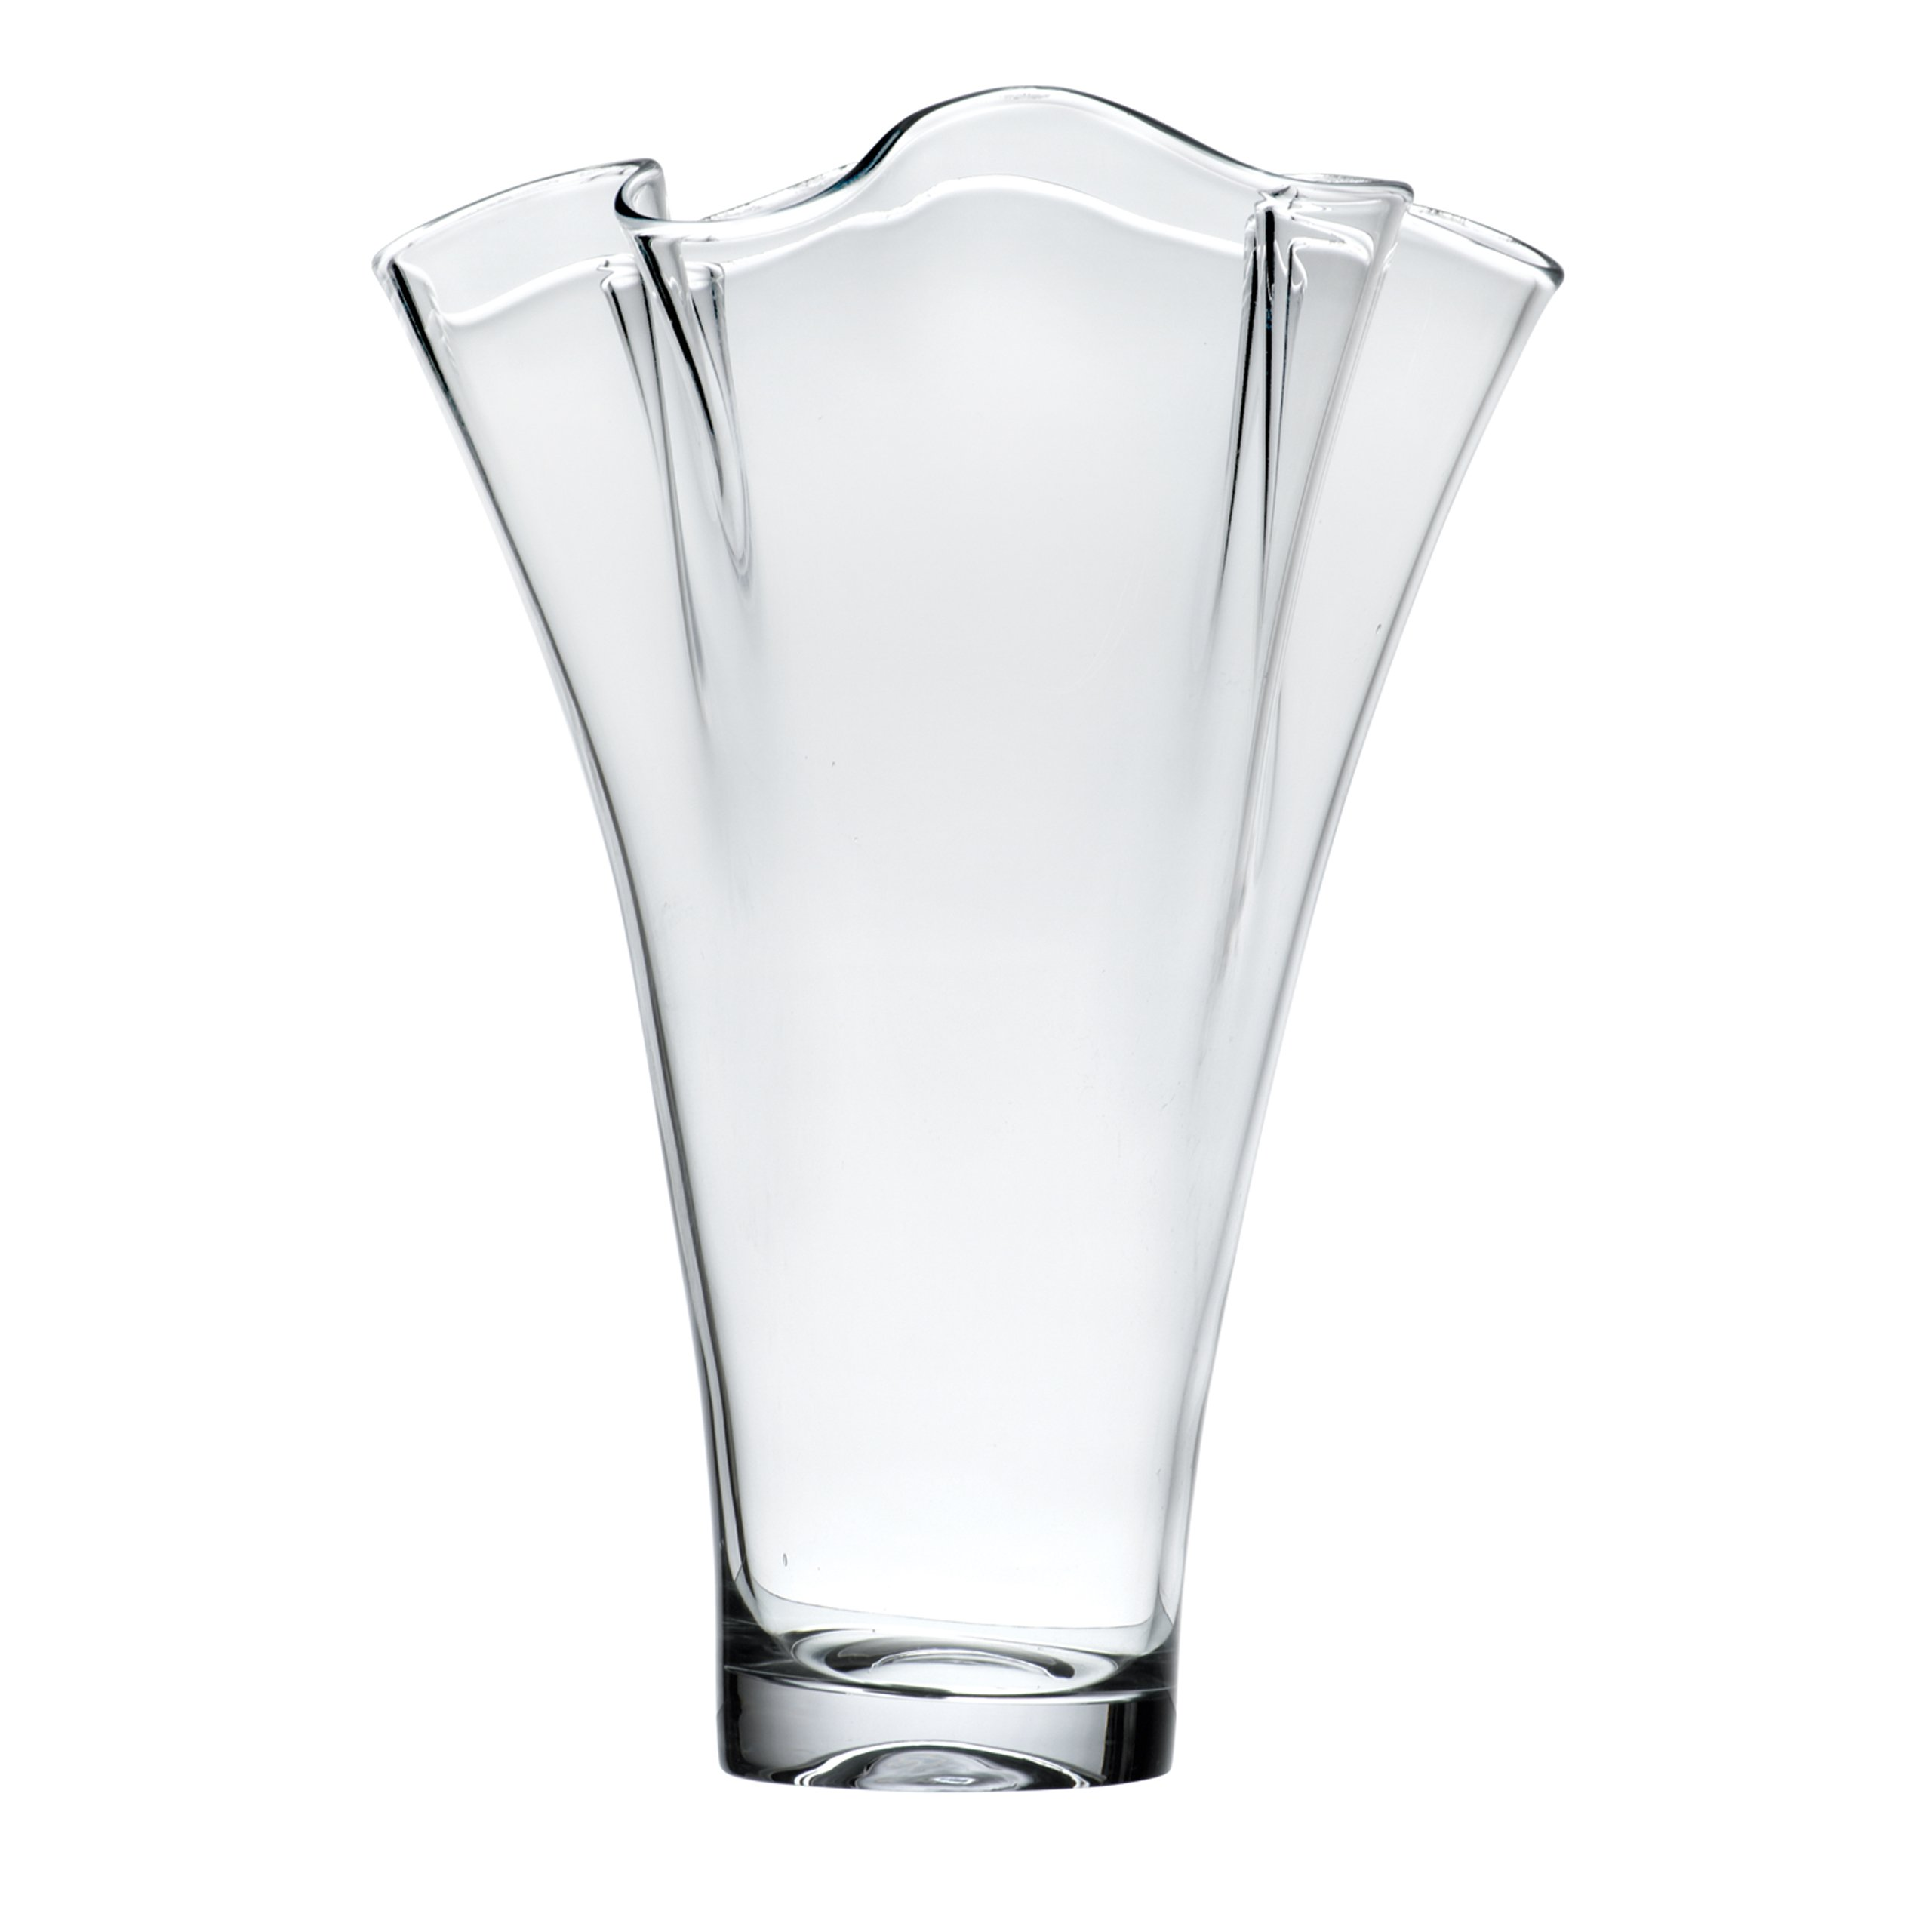 organics home glass img vase vases idea purple lenox luxury